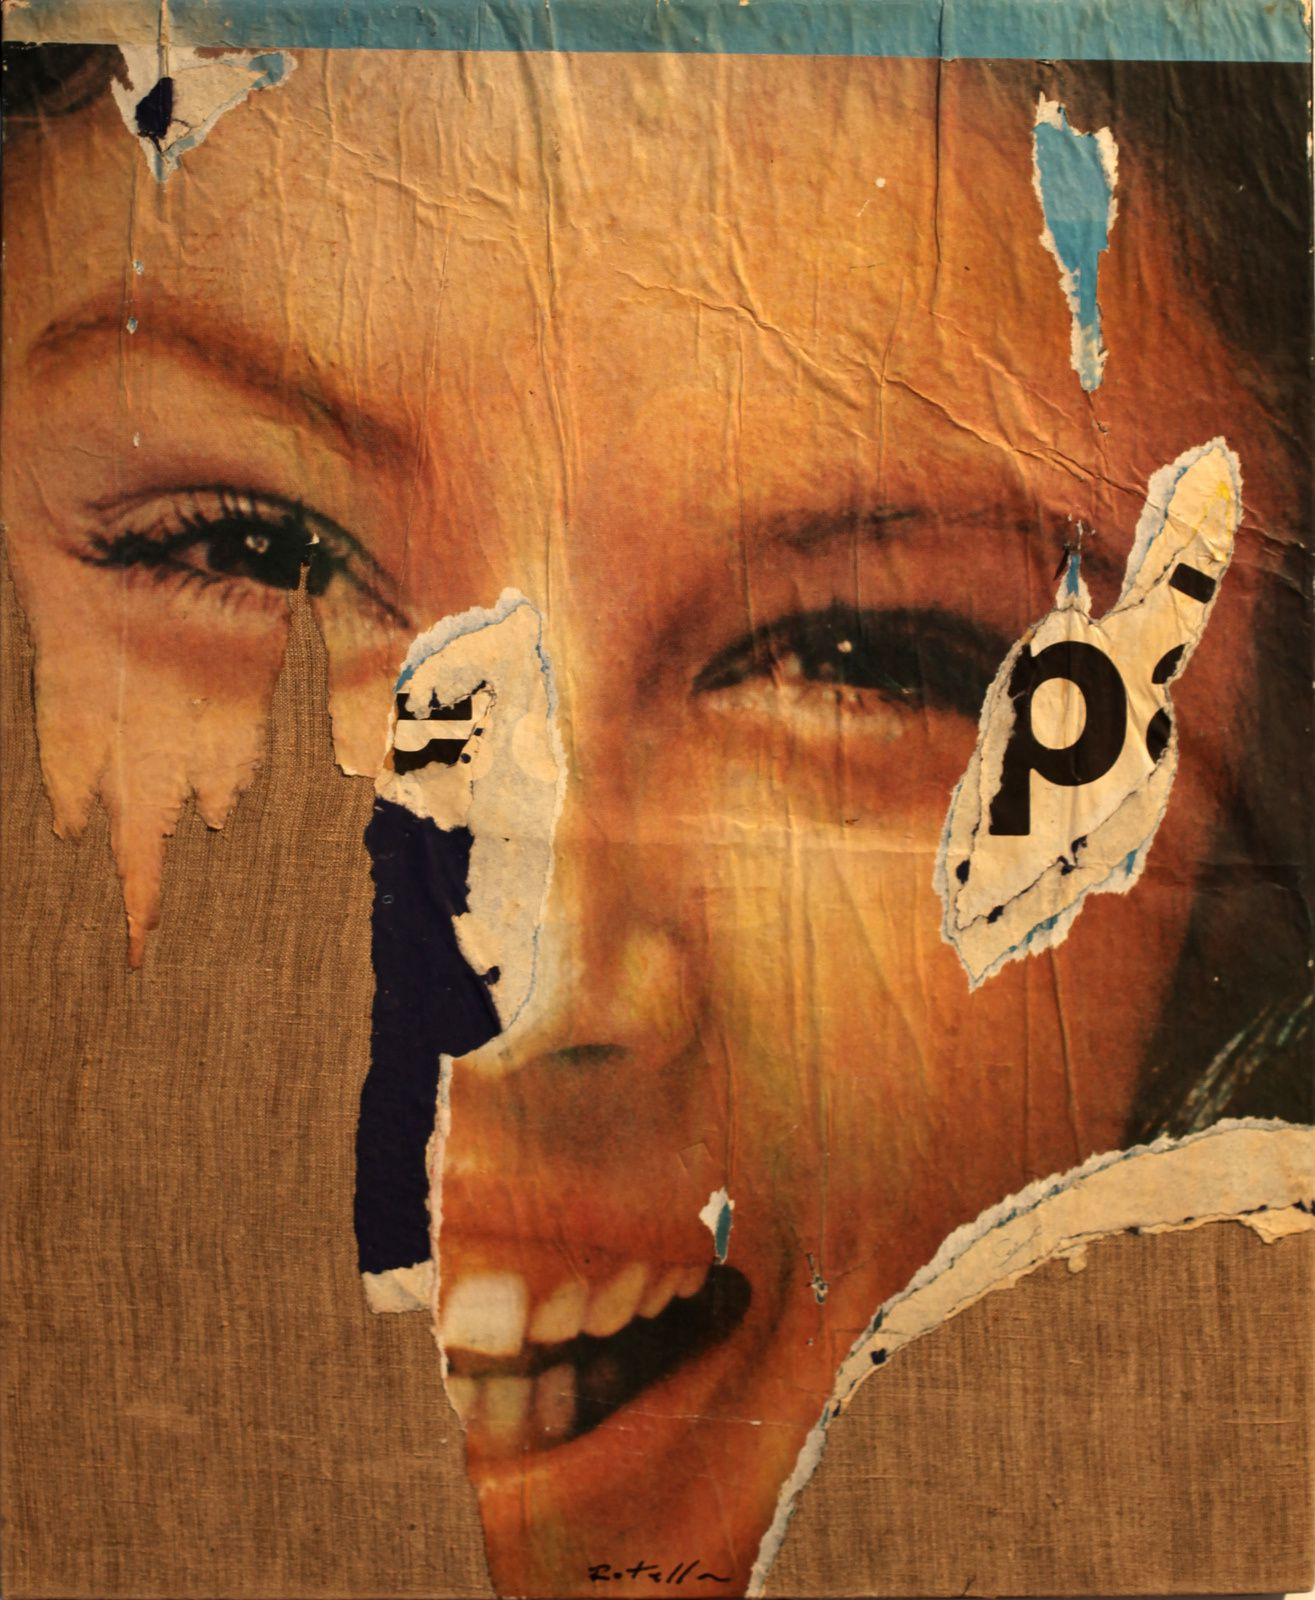 """Sorriso P"", 1963 de Mimmo ROTELLA - Courtesy TORNABUONI ART Paris © Photo Éric Simon"